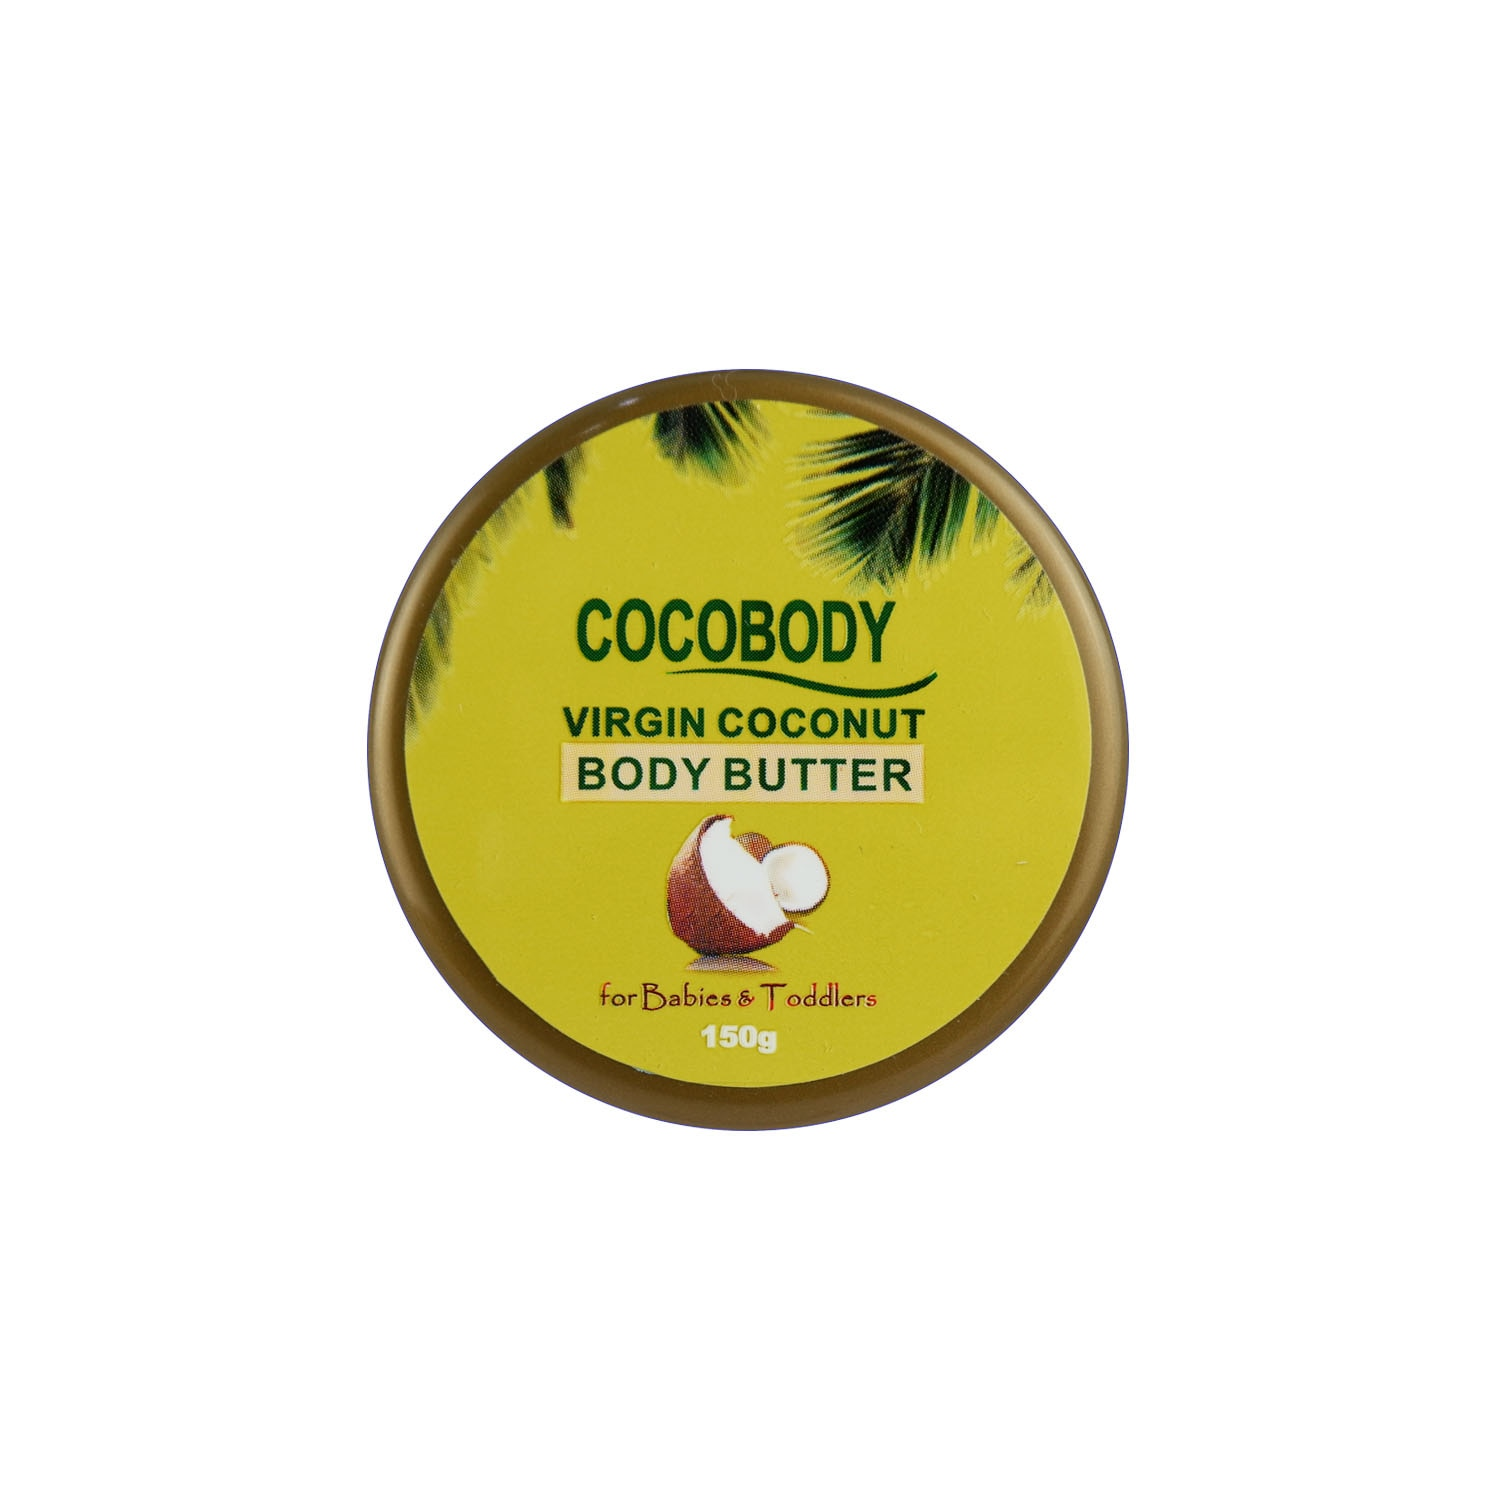 Virgin Coconut Body Butter for Babies & Toddlers 150g